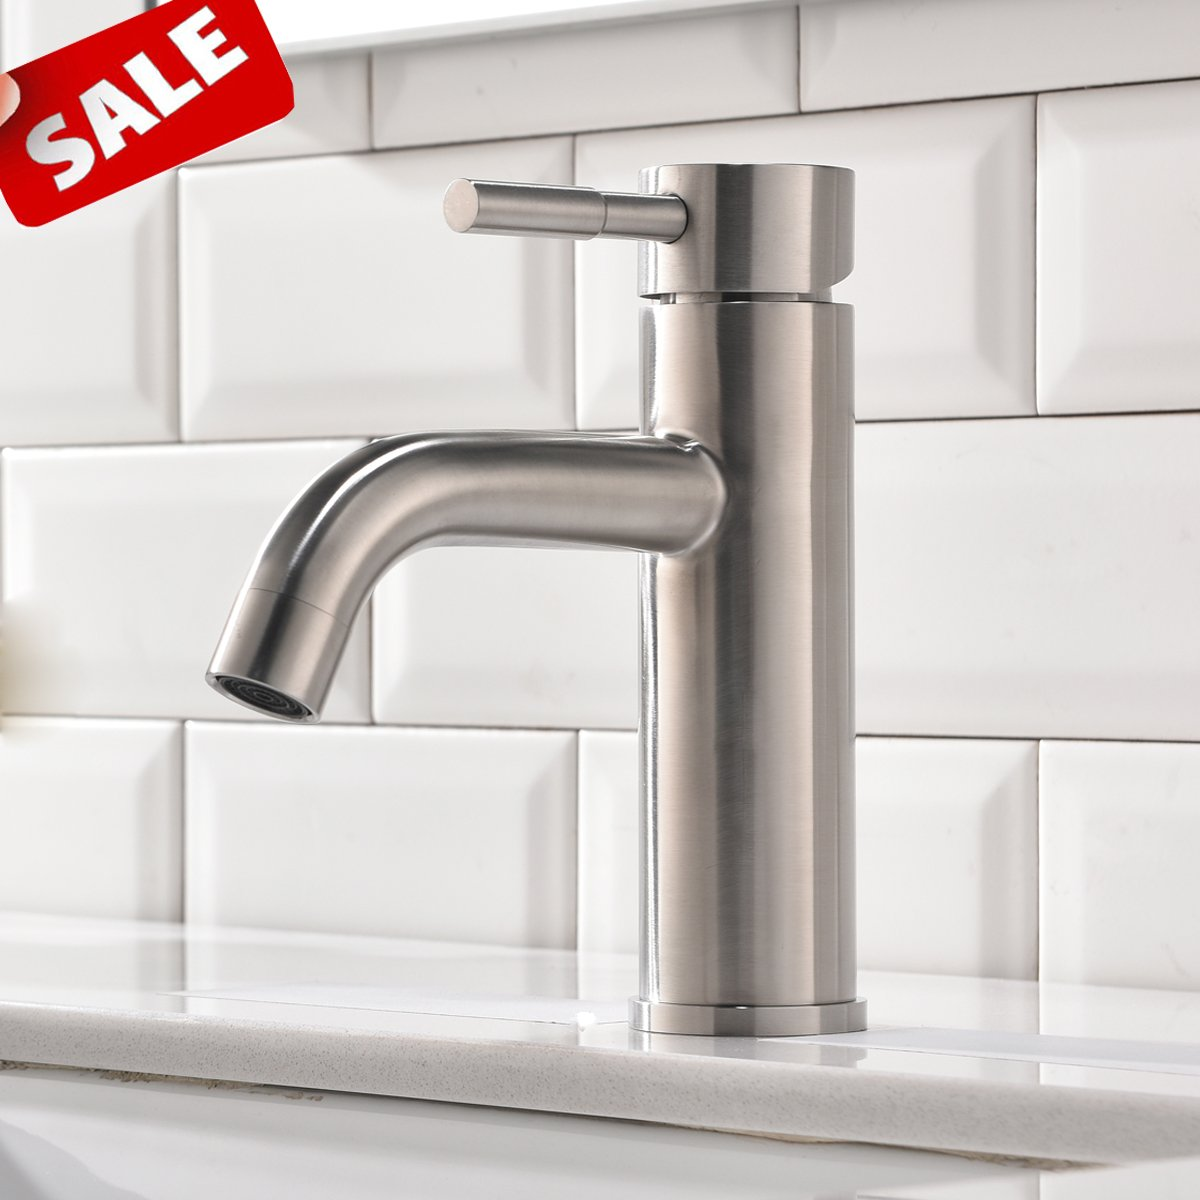 Excellent Details About Shaco Commercial Stainless Steel Vanity Single Handle Bathroom Faucet Brushed Download Free Architecture Designs Scobabritishbridgeorg